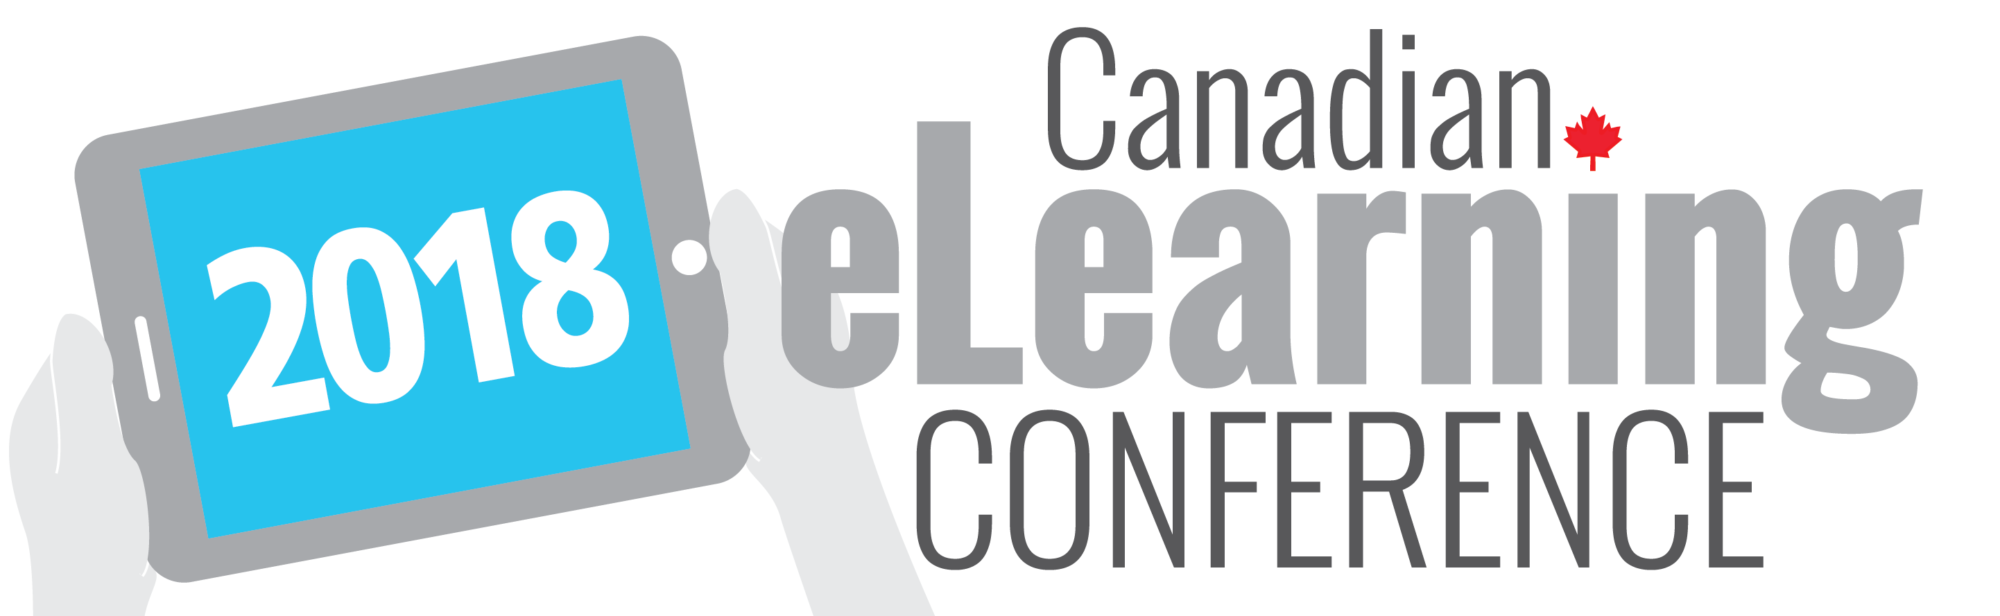 Canadian Elearning Conference